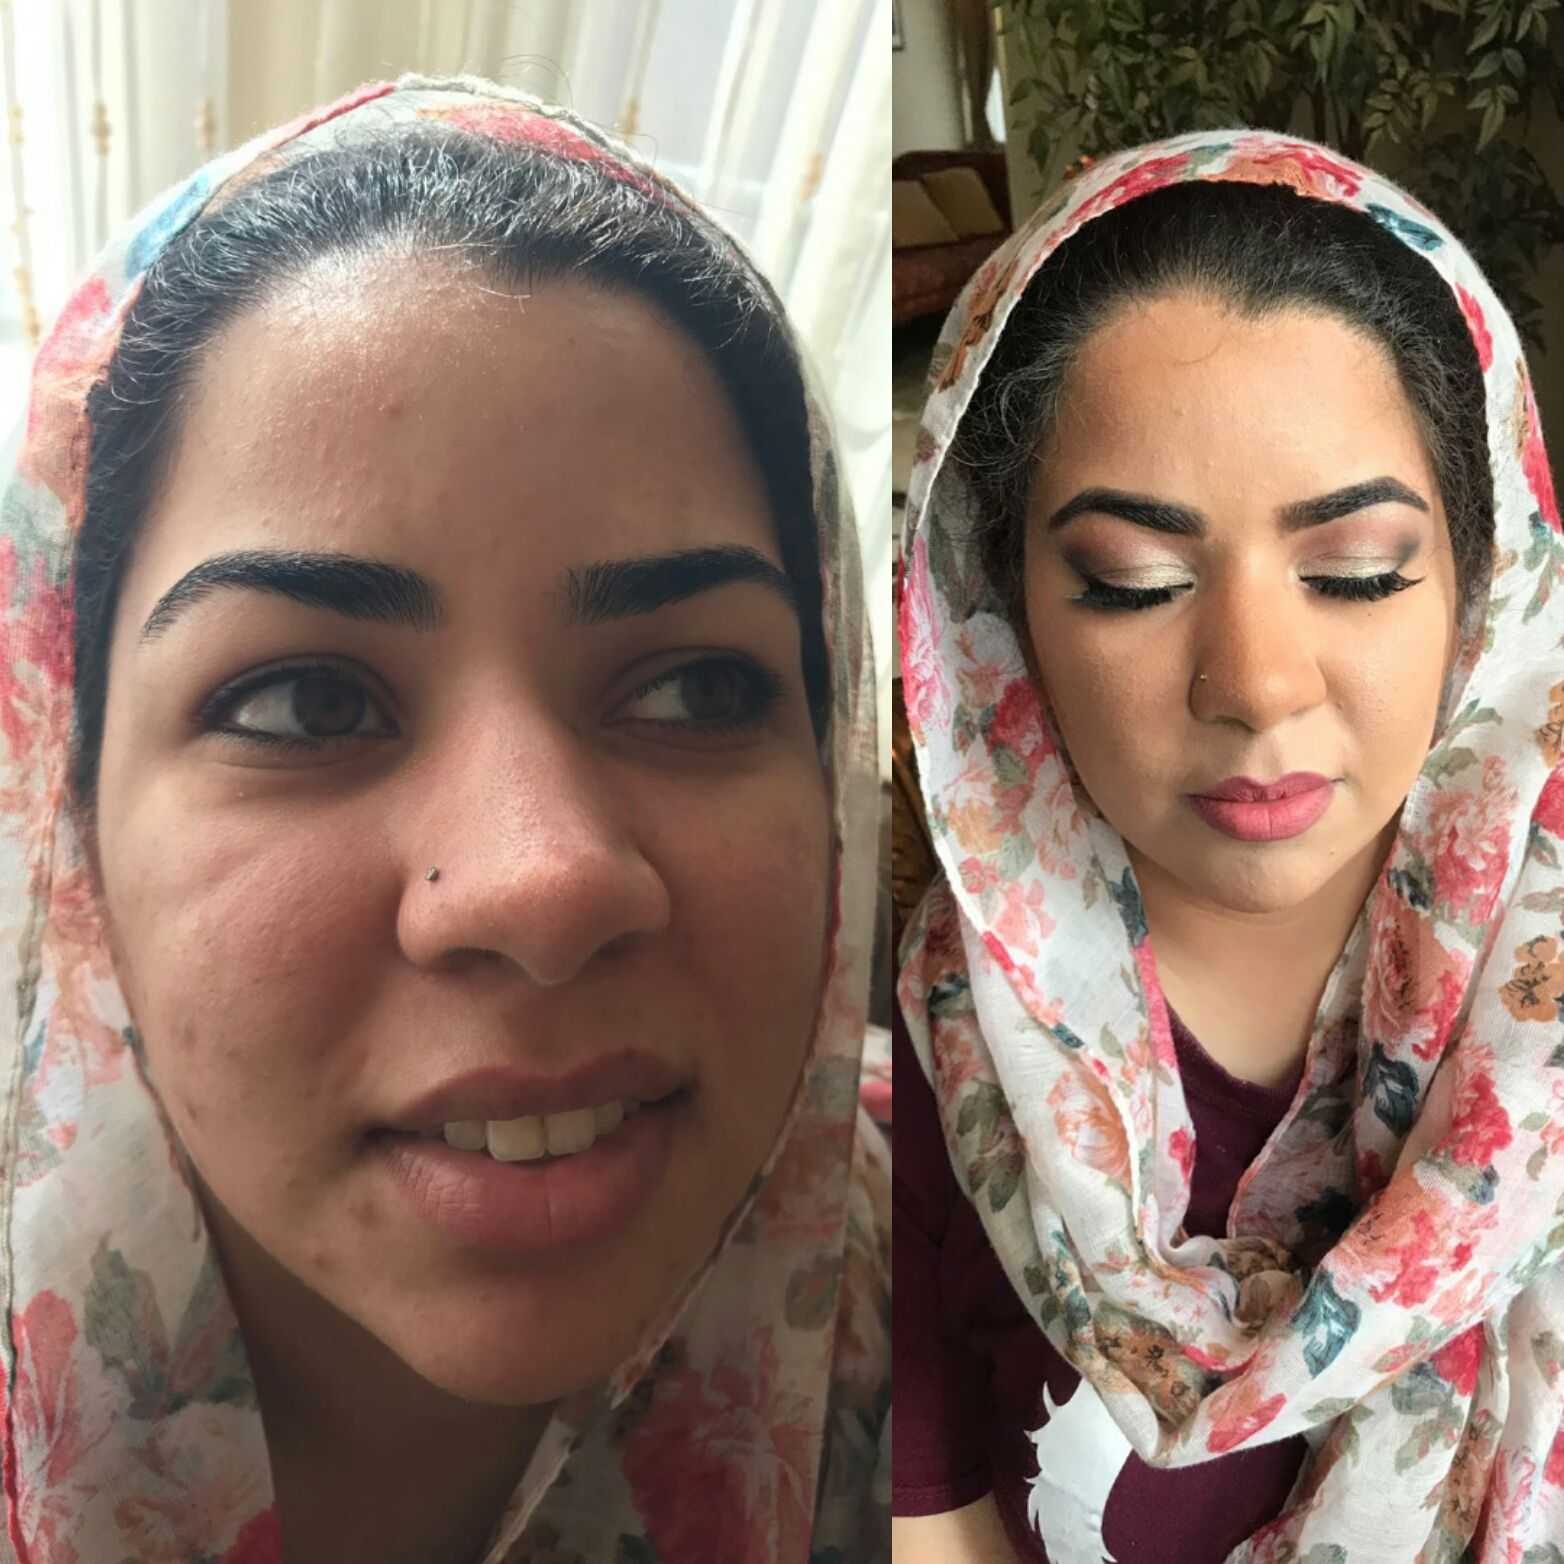 Makeup Services Threading, Henna Tattoo, Henna Tinting